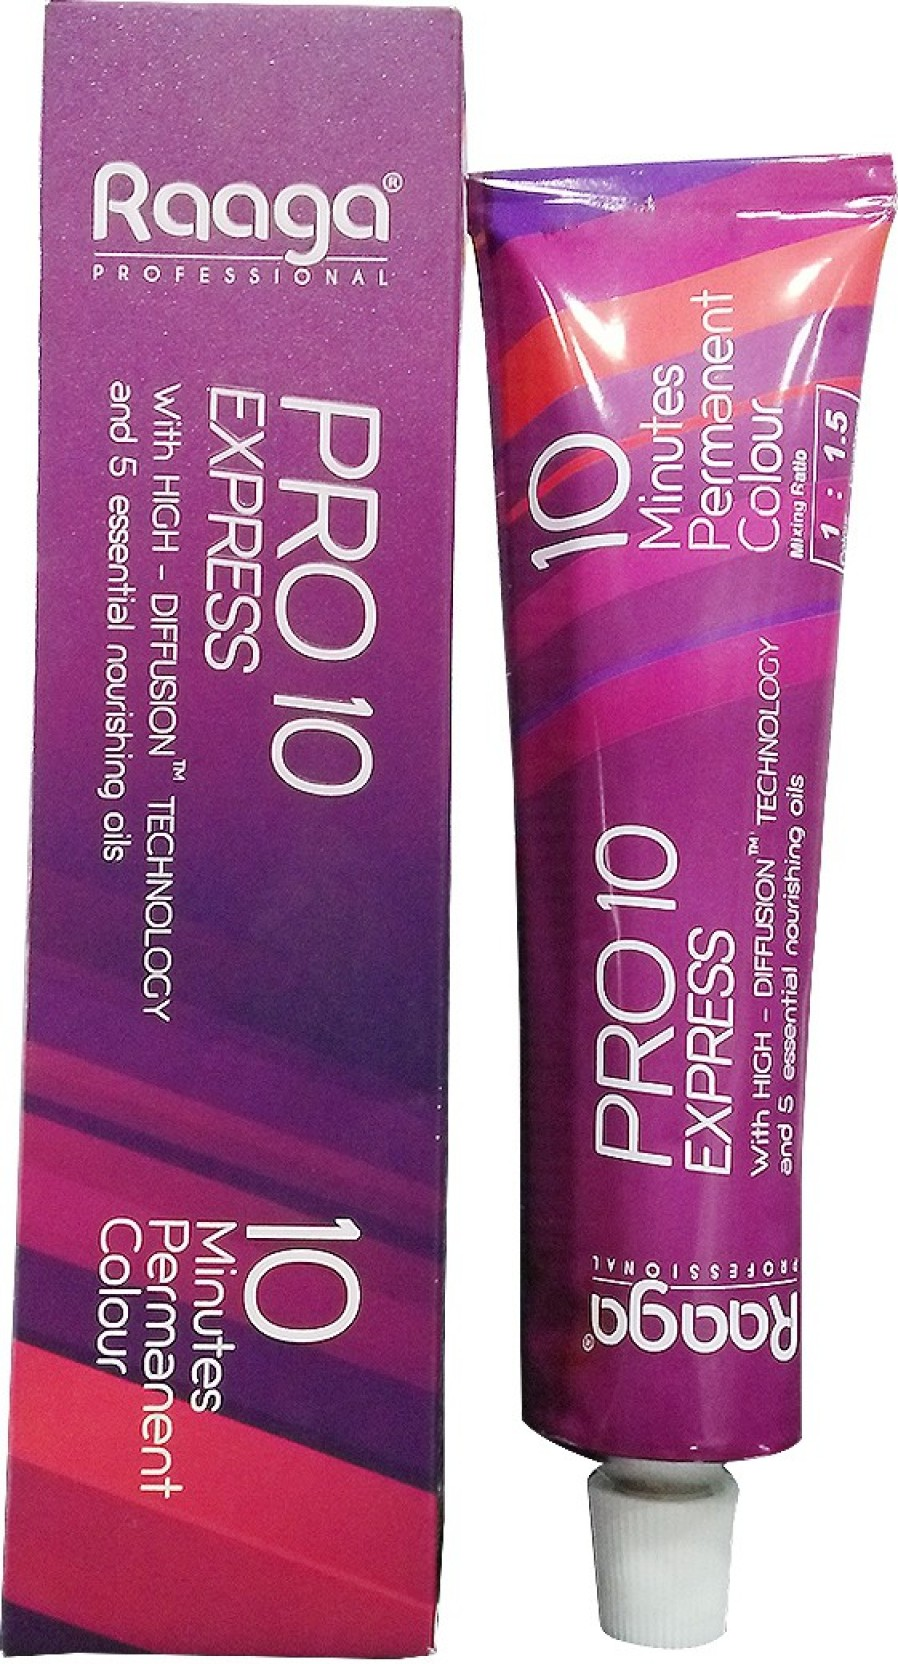 Raaga Pro 10 Express With High Diffusion Hair Color Price In India